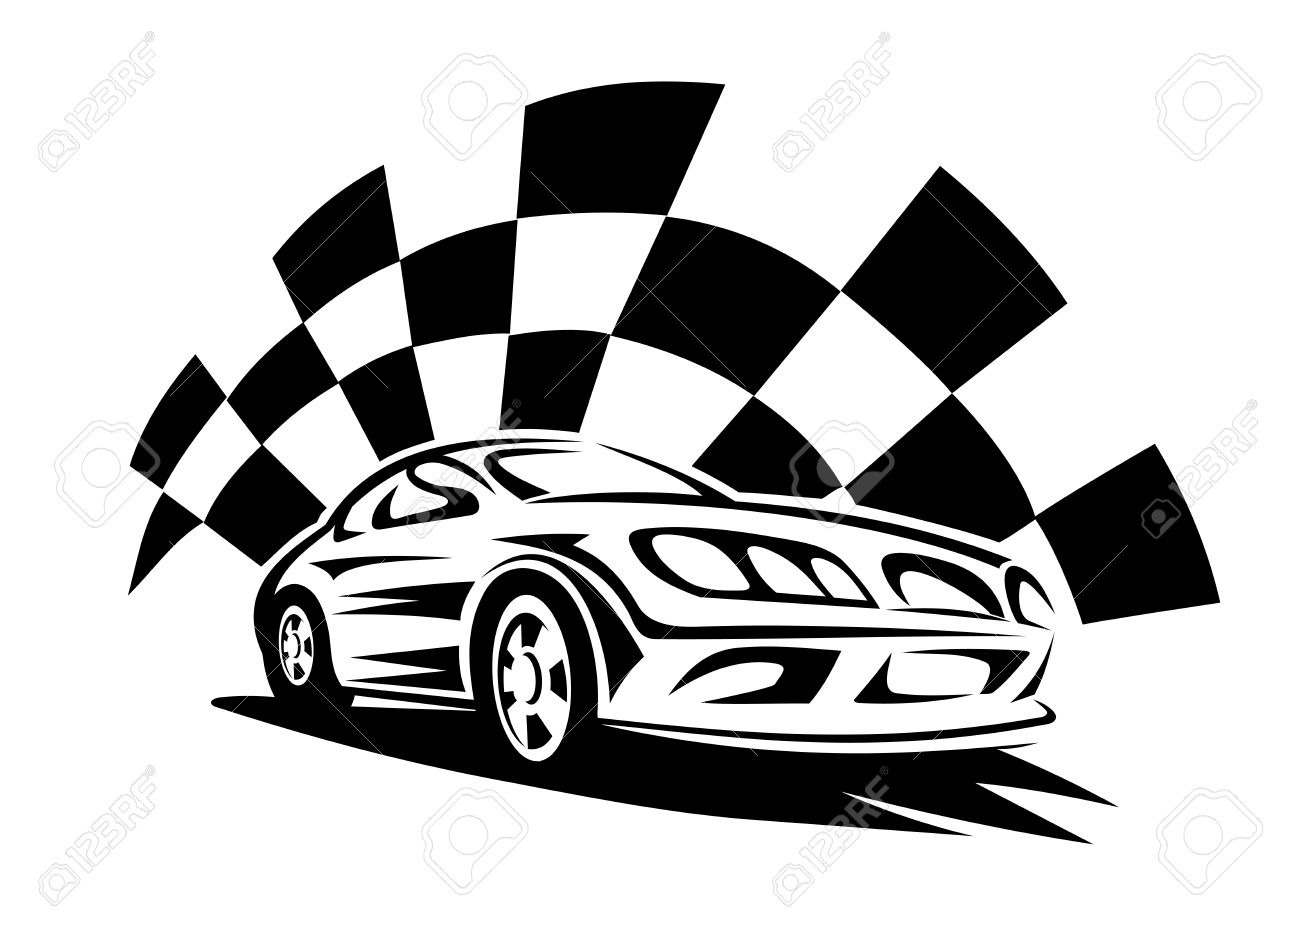 Black Silhouette Of Modern Racing Car With Checkered Flag On